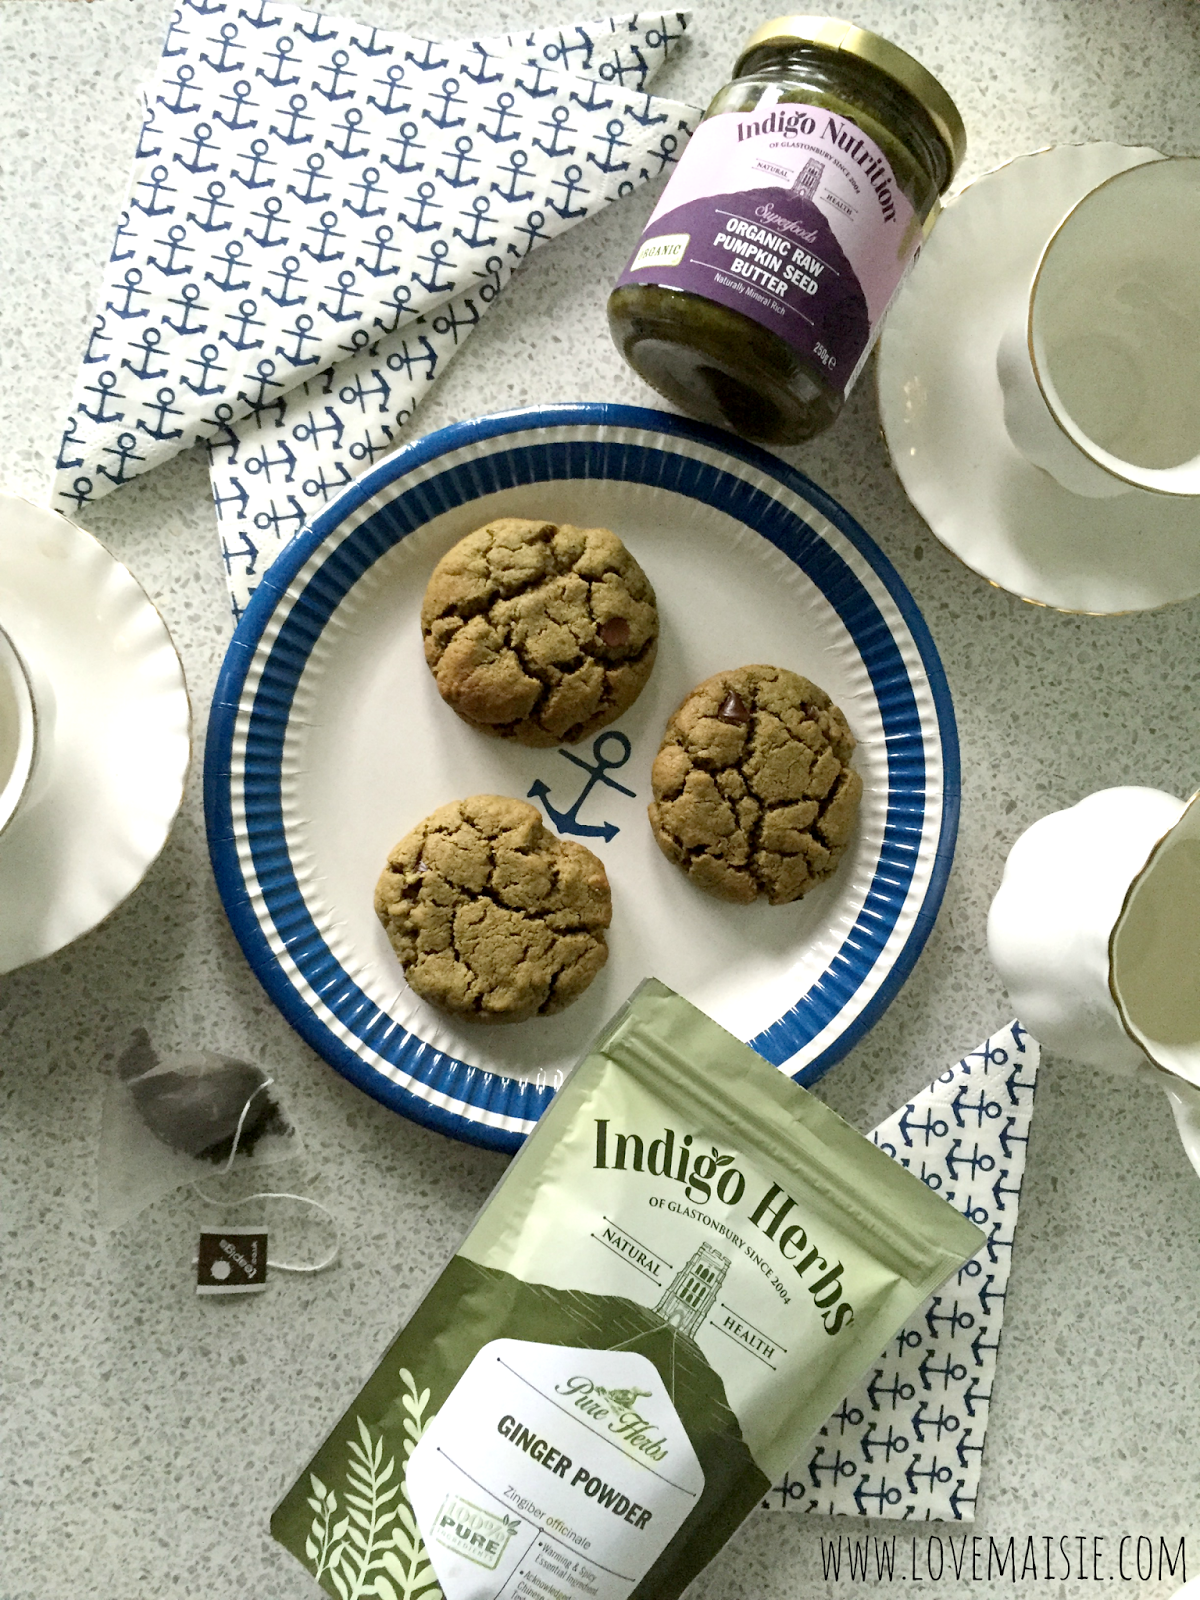 Vegan Ginger + Pumpkin Seed Butter Cookies! Love, Maisie with indigo Herbs